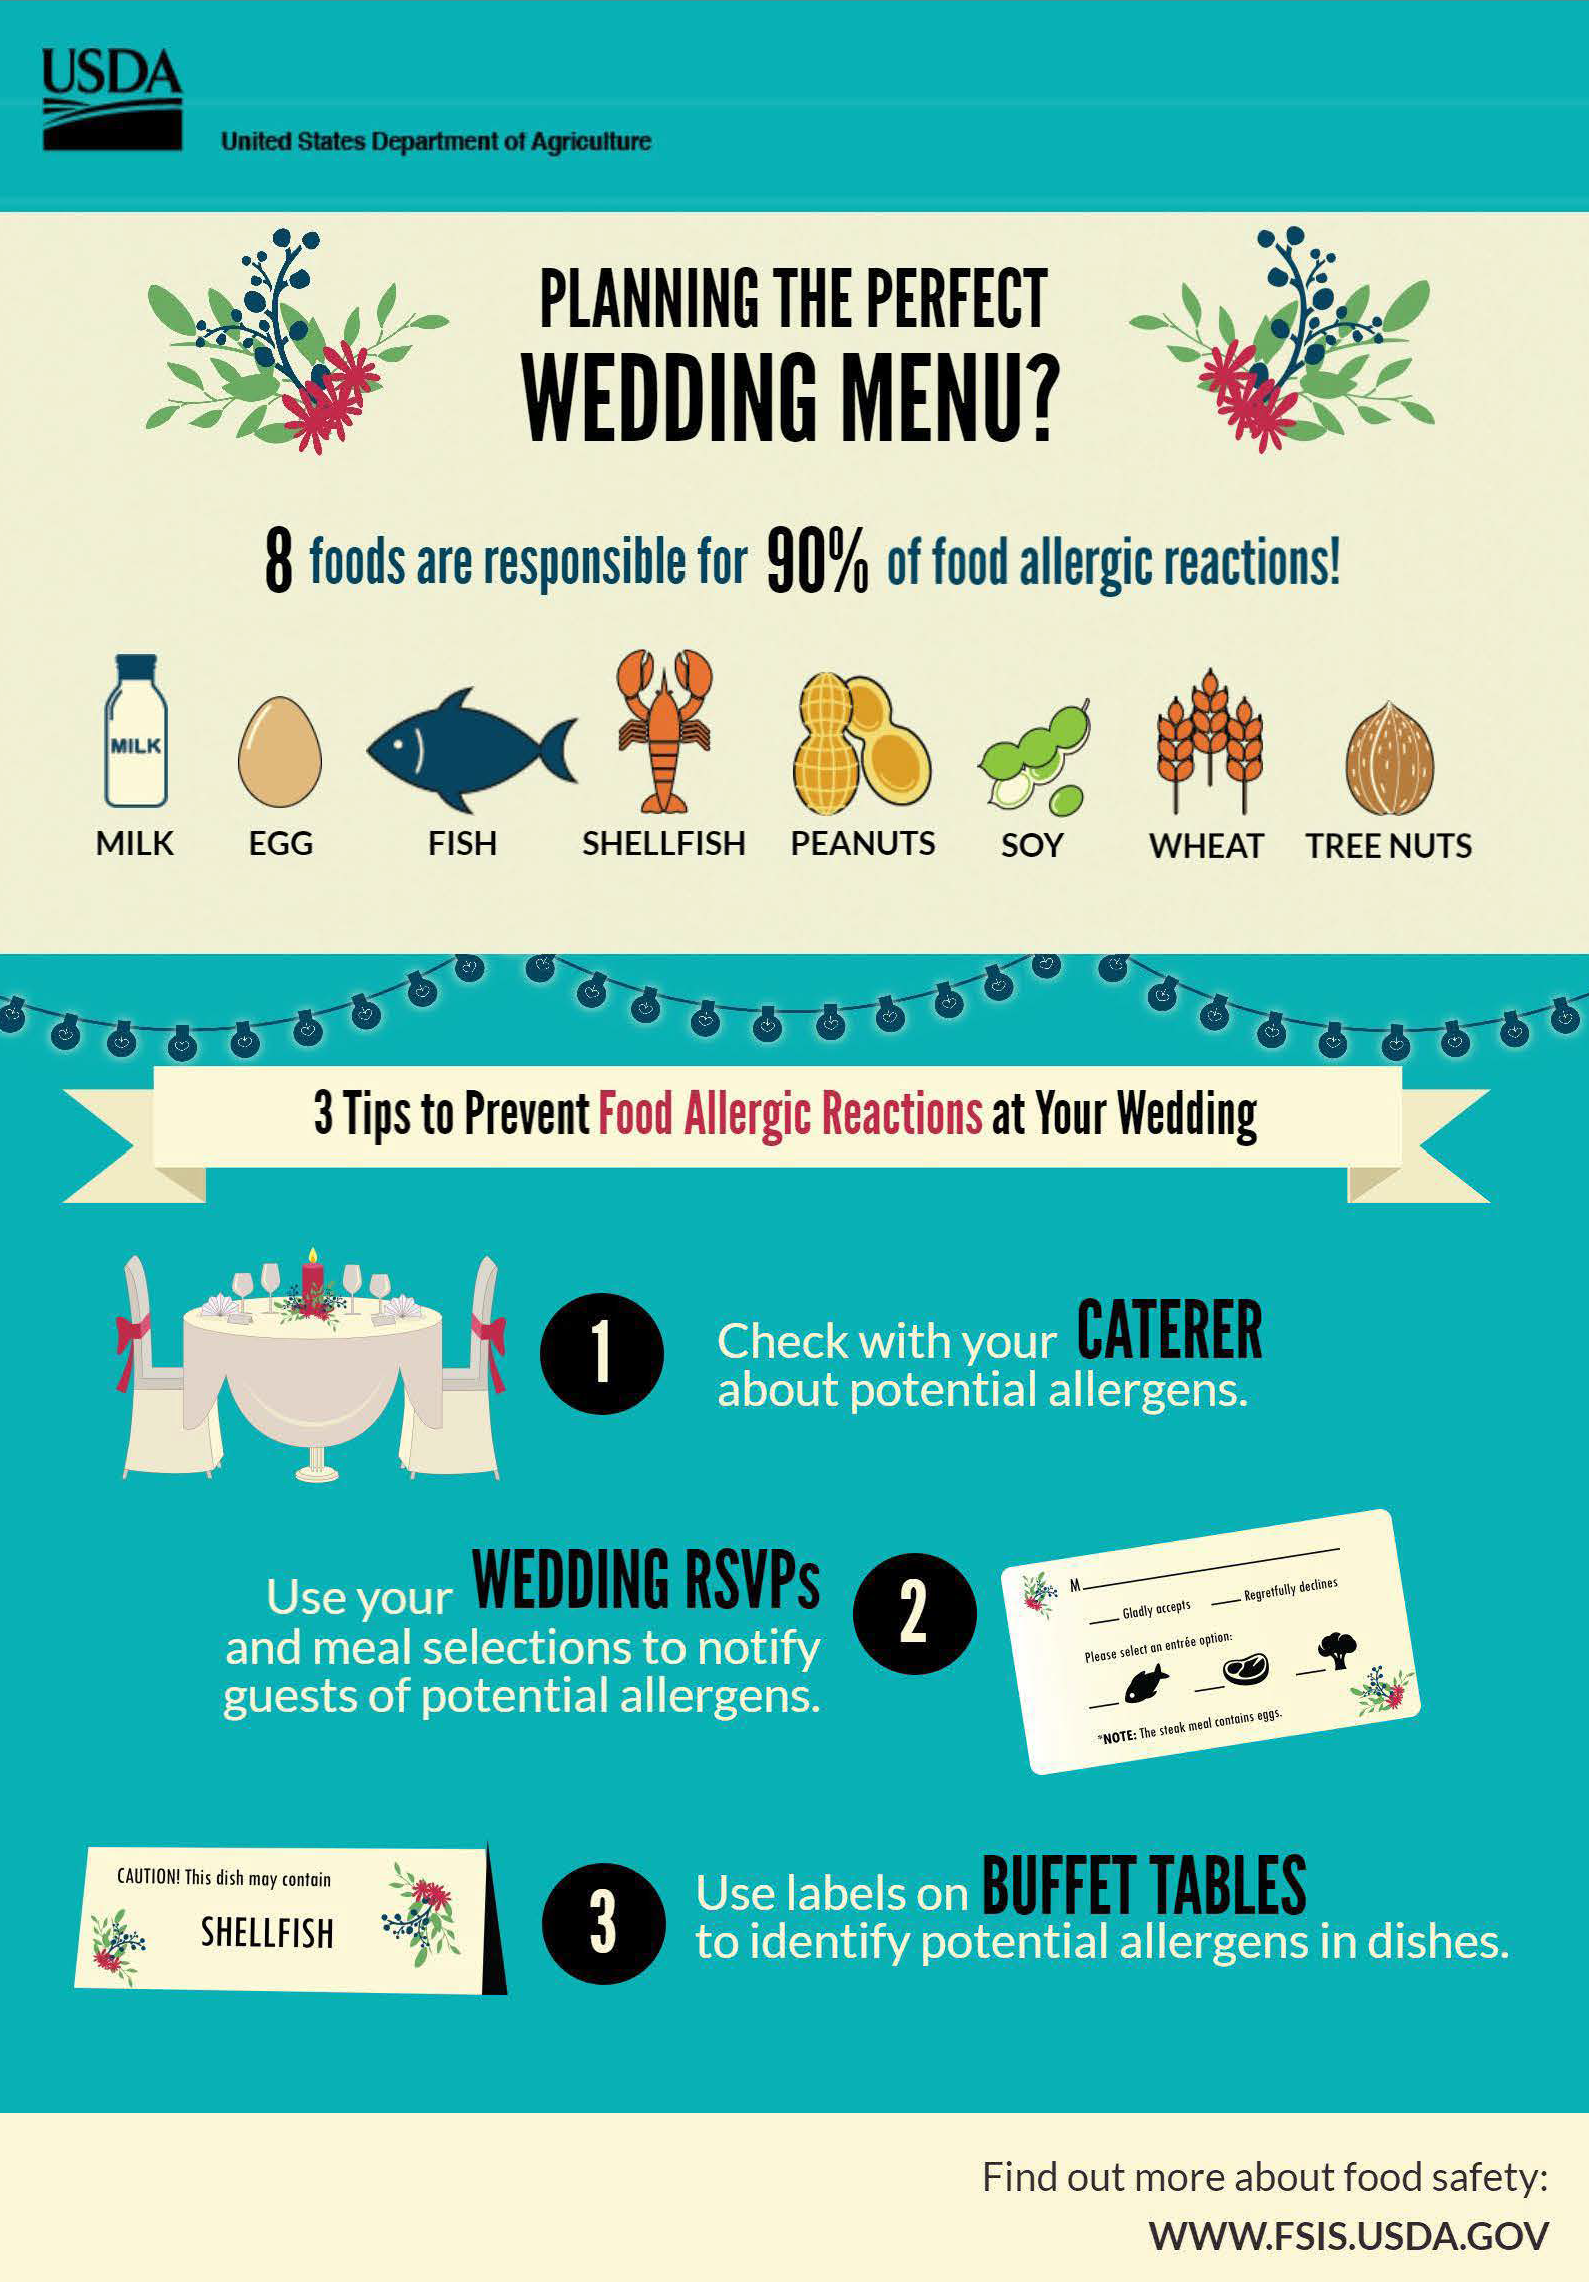 This infographic shares tips on how to plan a safe wedding menu and avoid potential food allergens.